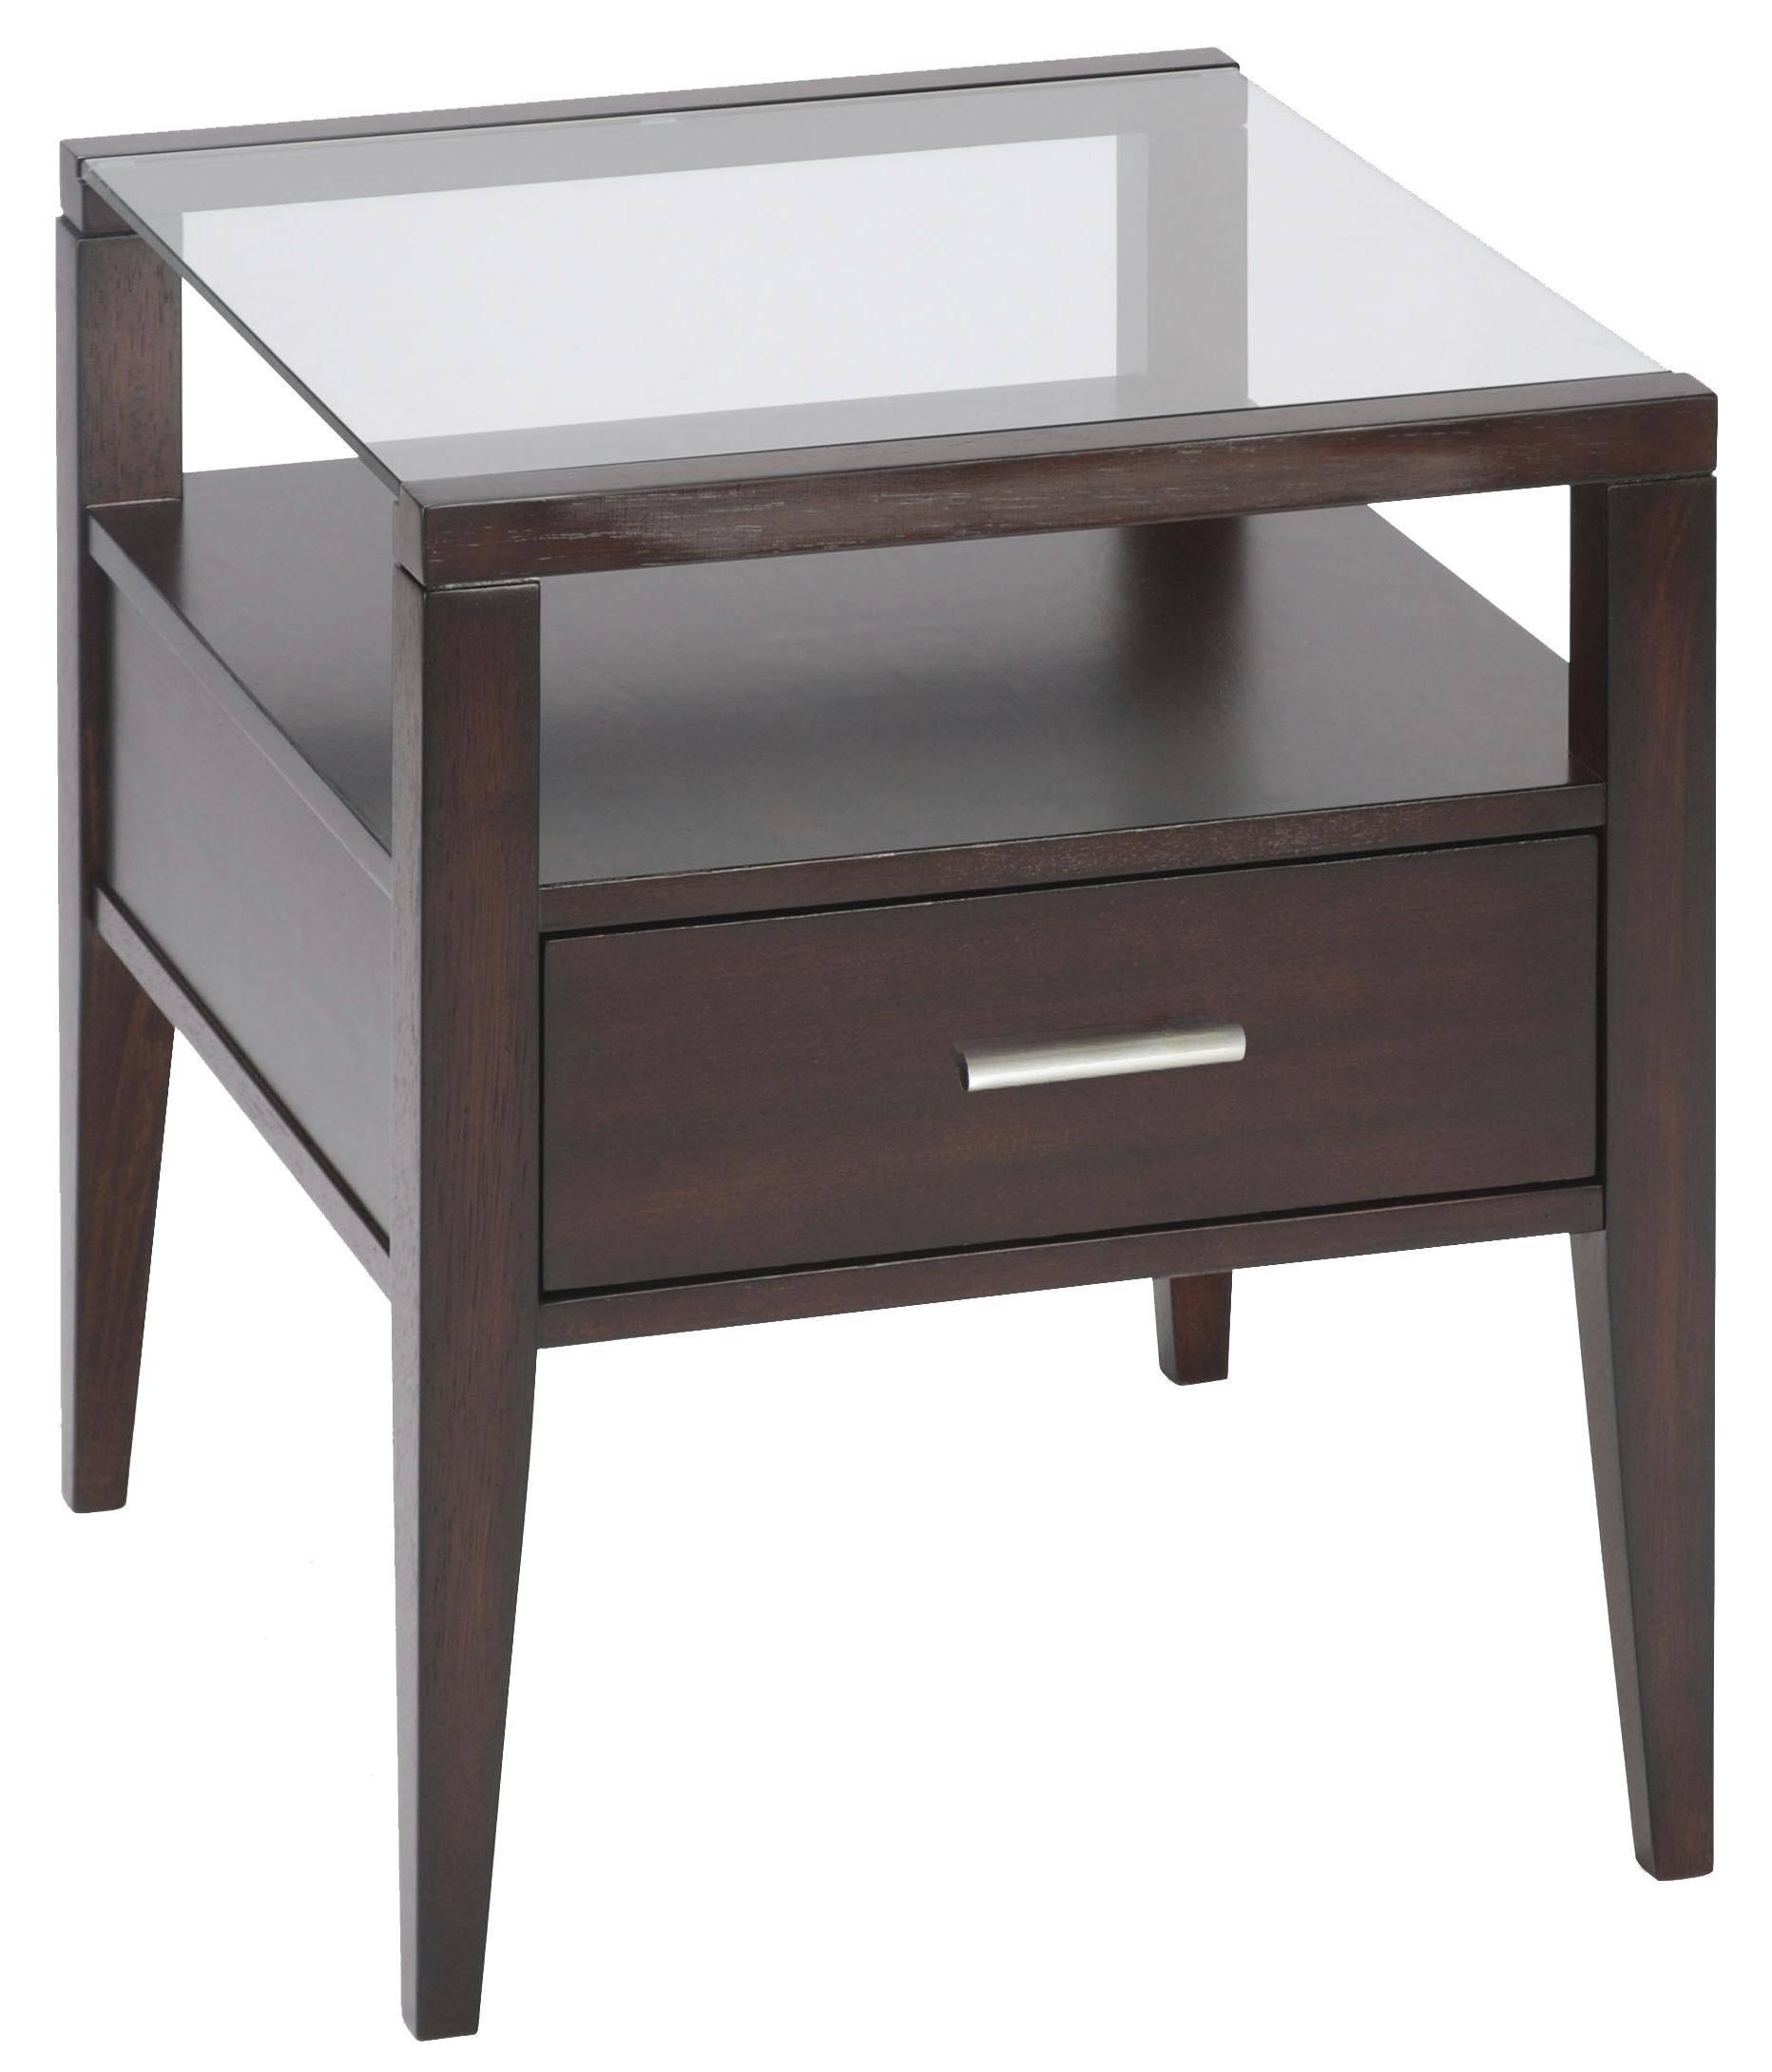 Contemporary Sofa Table With Two Drawersmagnussen Home | Wolf throughout Sofa Table Drawers (Image 9 of 30)